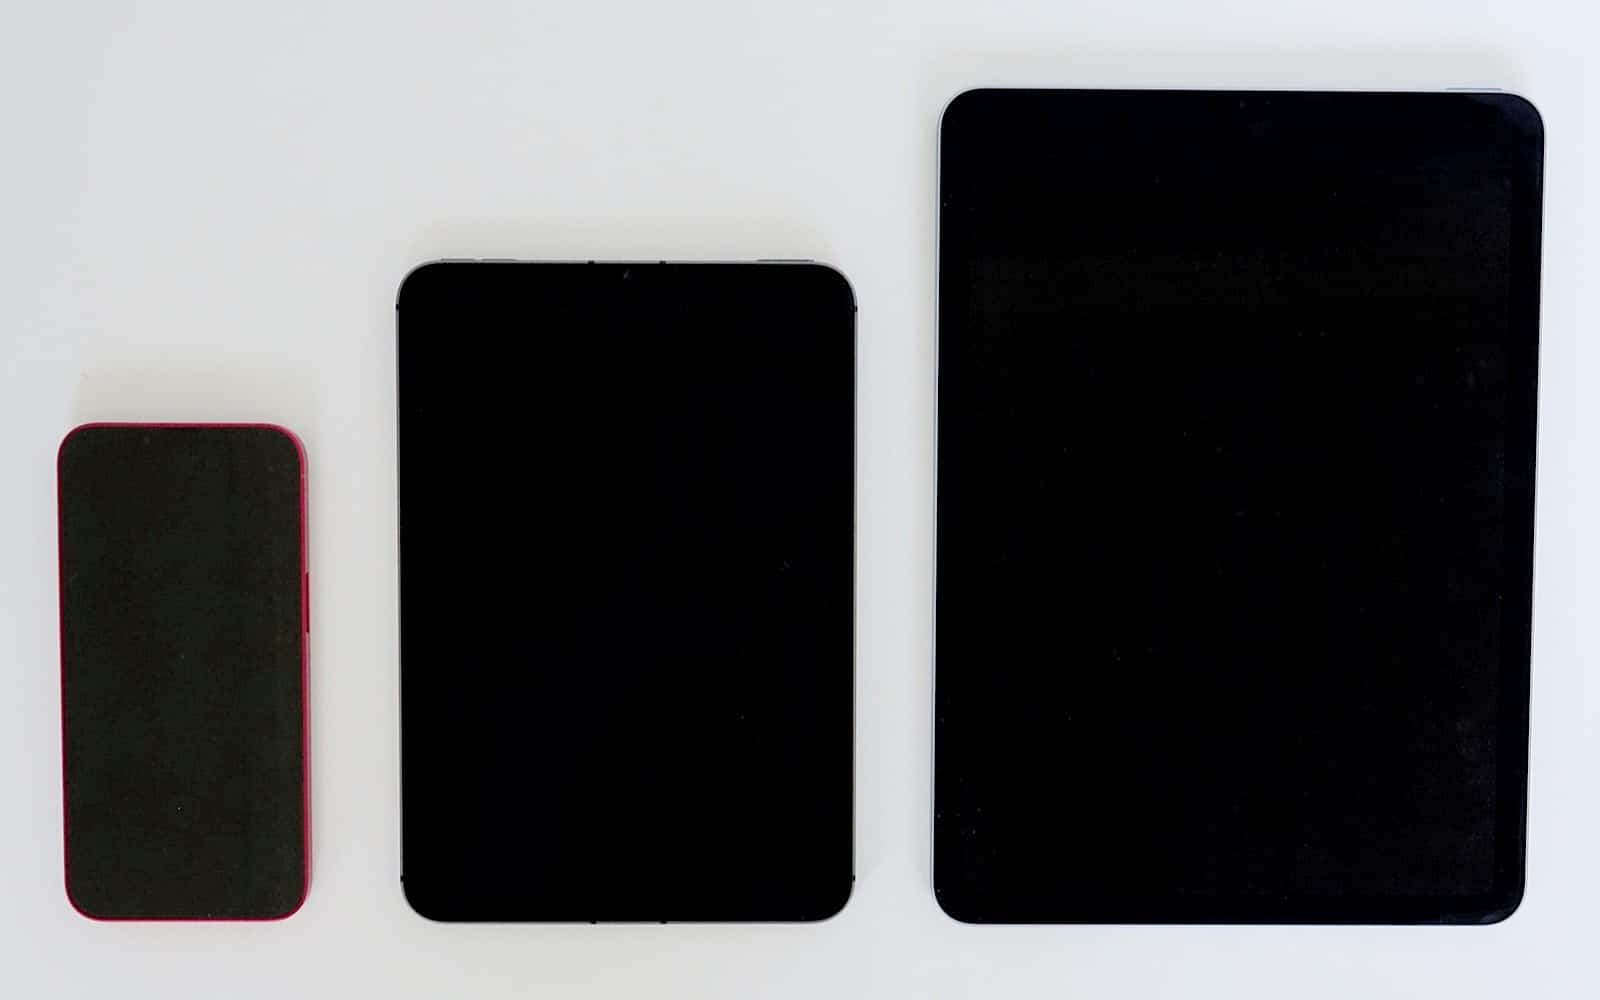 From left to right: iPhone 13, iPad Mini, iPad Air